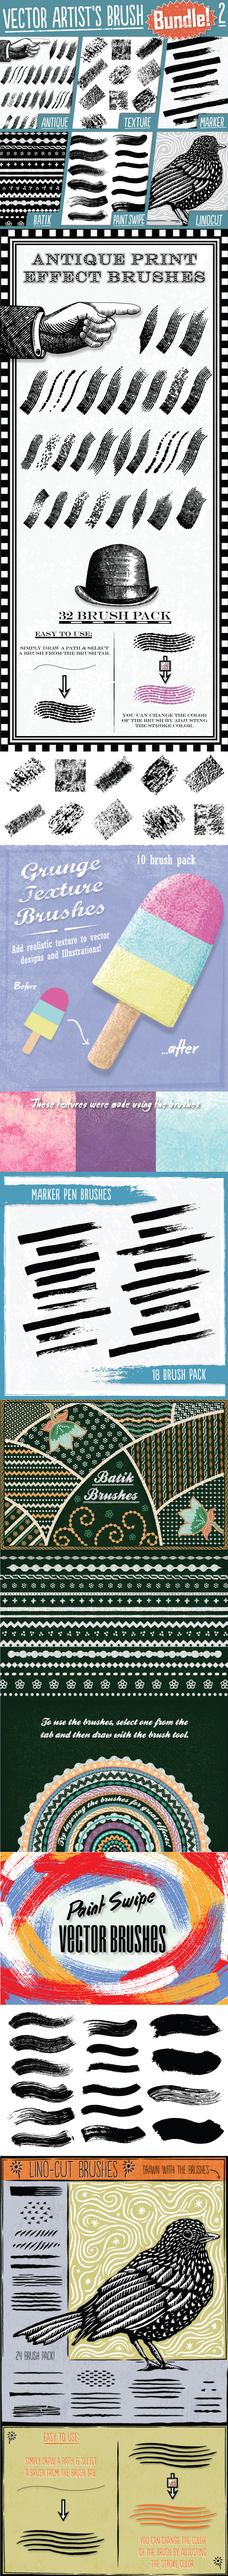 GraphicRiver Vector Artist's Brush Bundle 2 9283167